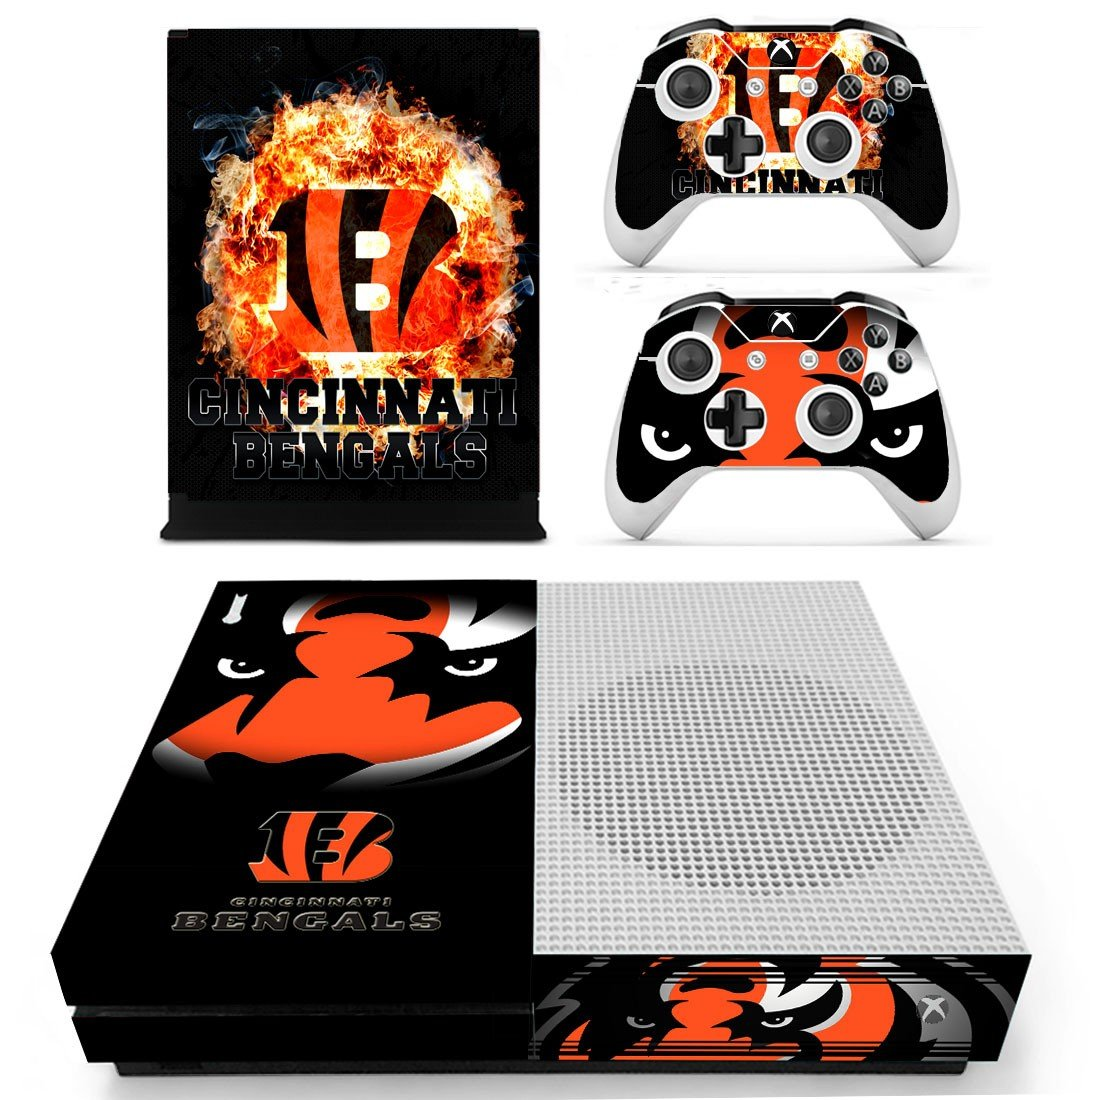 Cincinnati Bengals skin decal for Xbox one S console and controllers